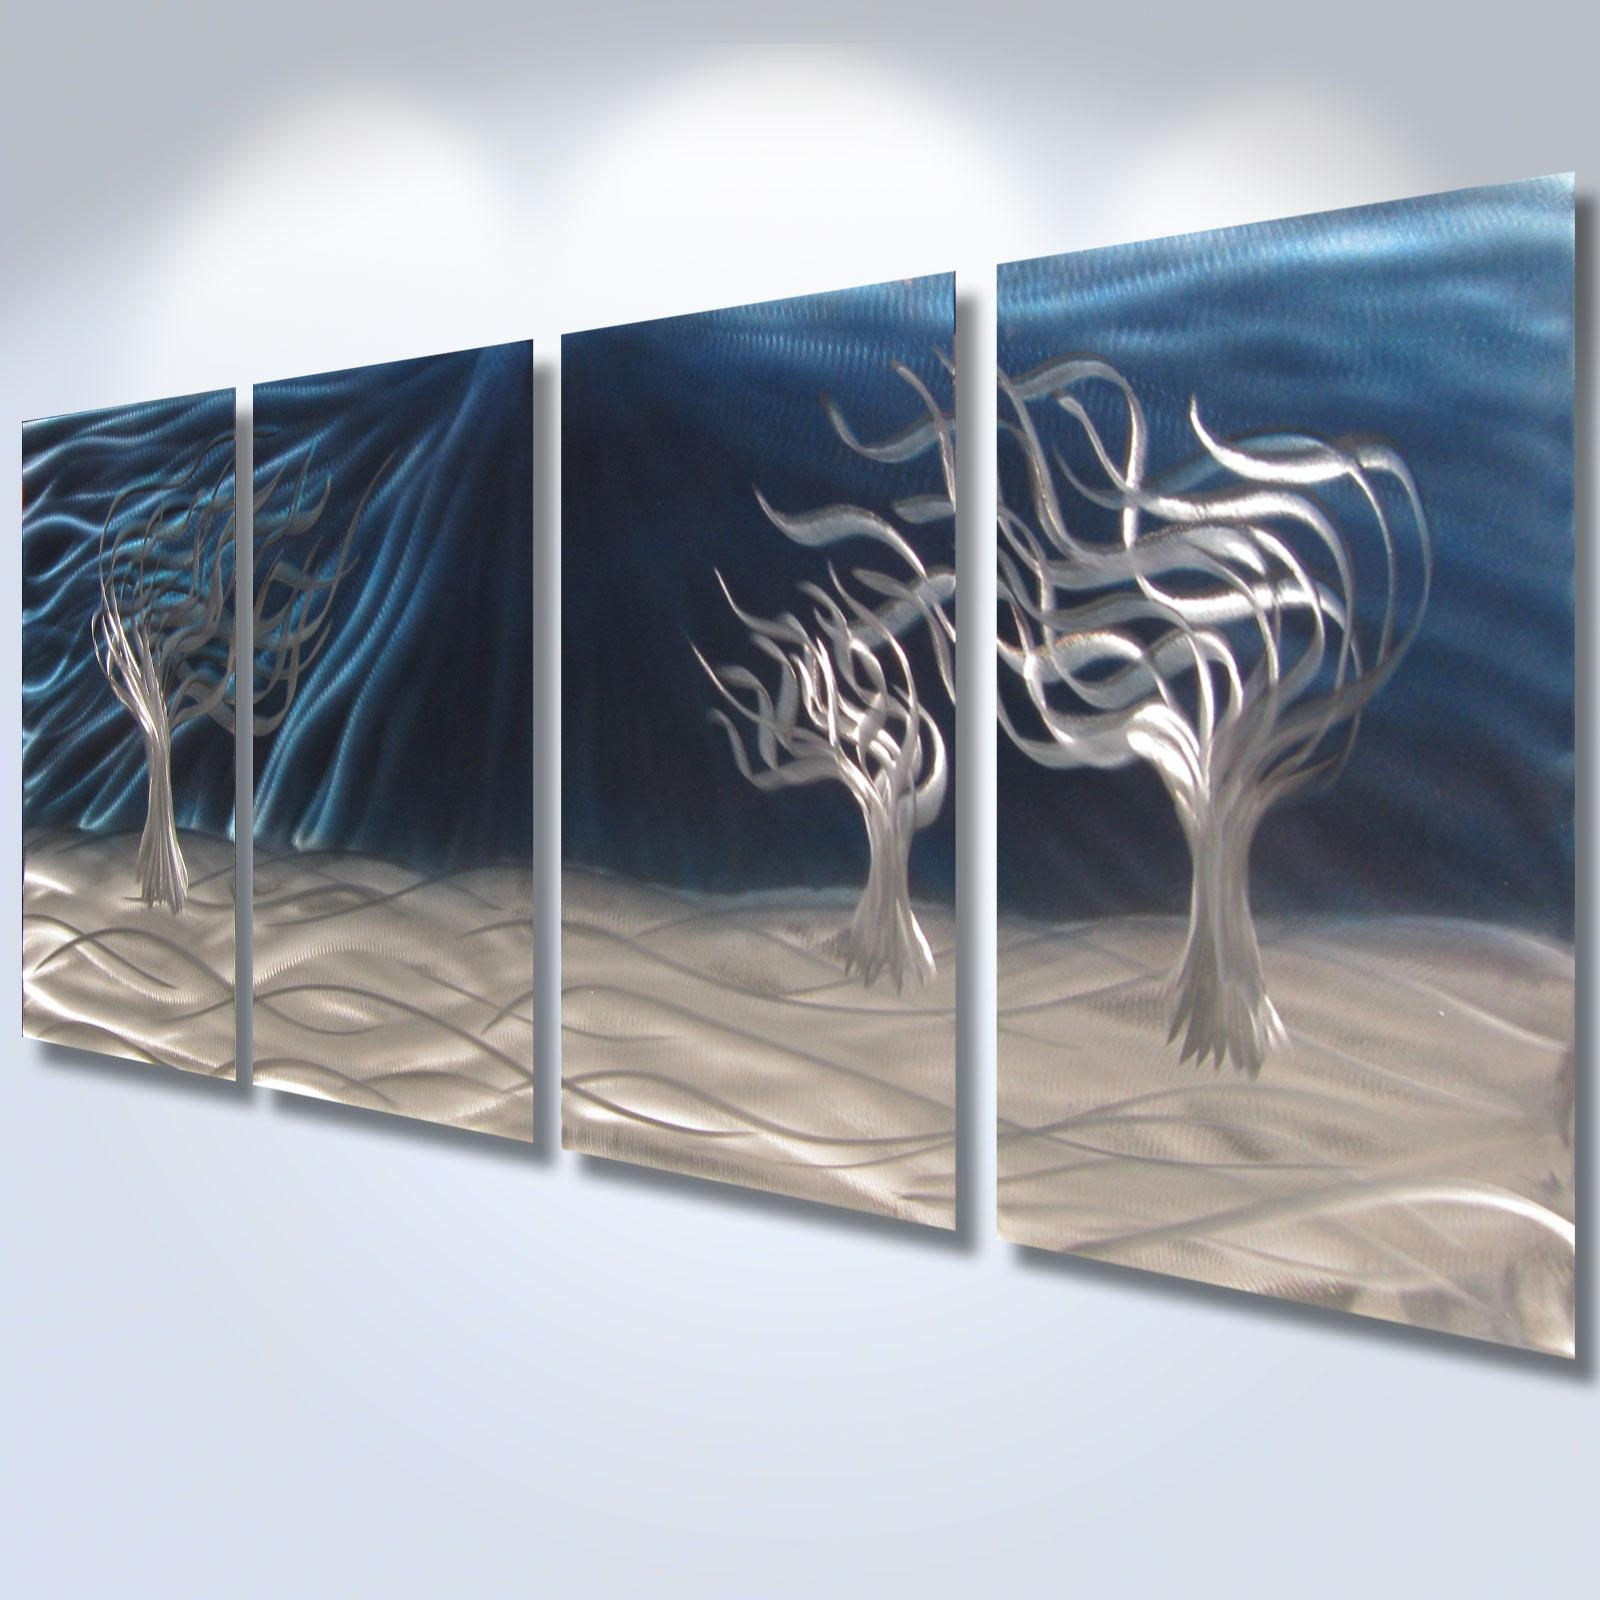 3 Trees Blue – Abstract Metal Wall Art Contemporary Modern Decor With Metal Tree Wall Art Sculpture (Image 1 of 20)